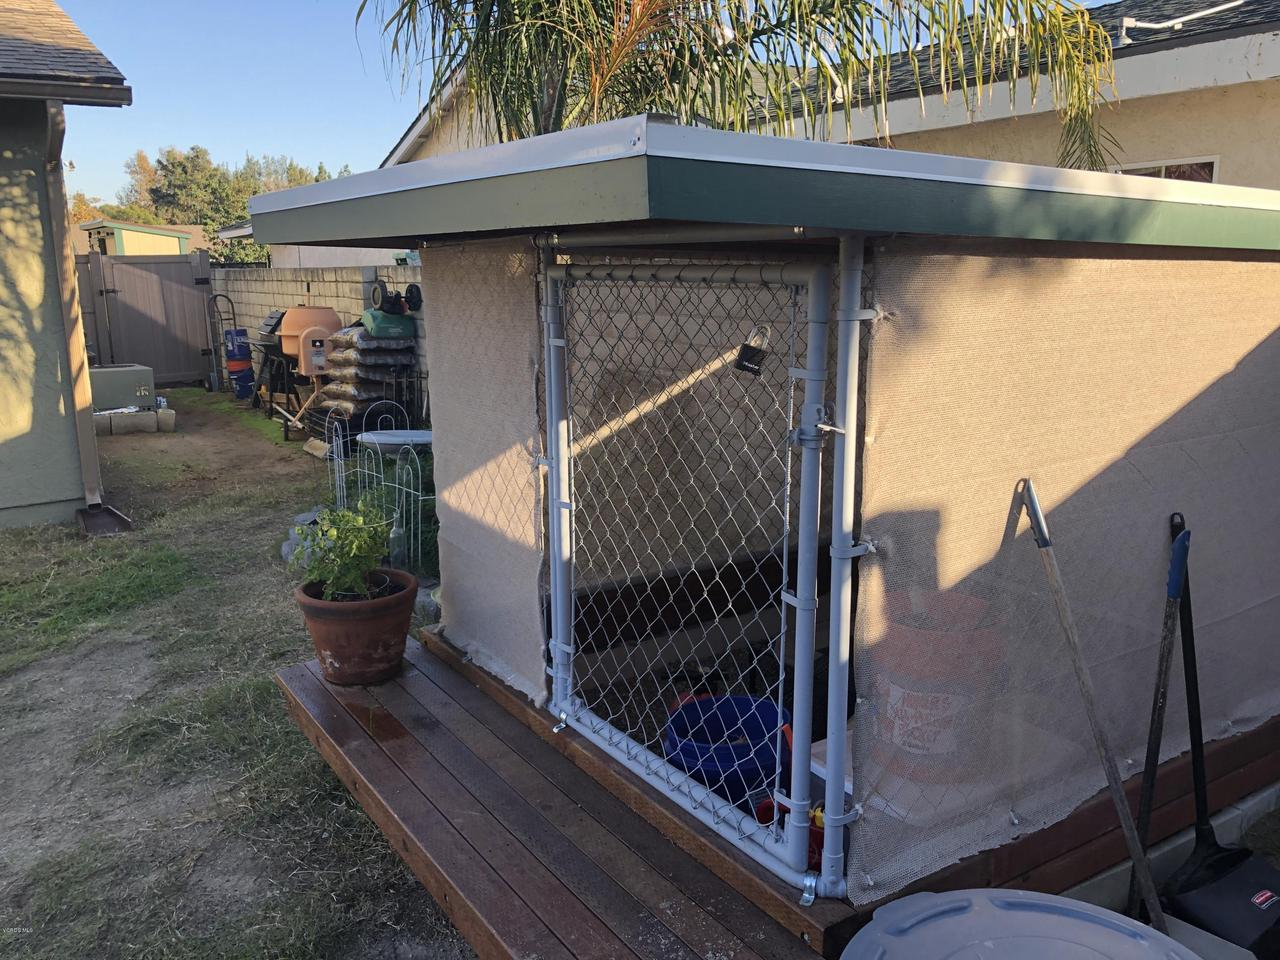 6489 DUKE, Moorpark, CA 93021 - AA_Dog Shelter